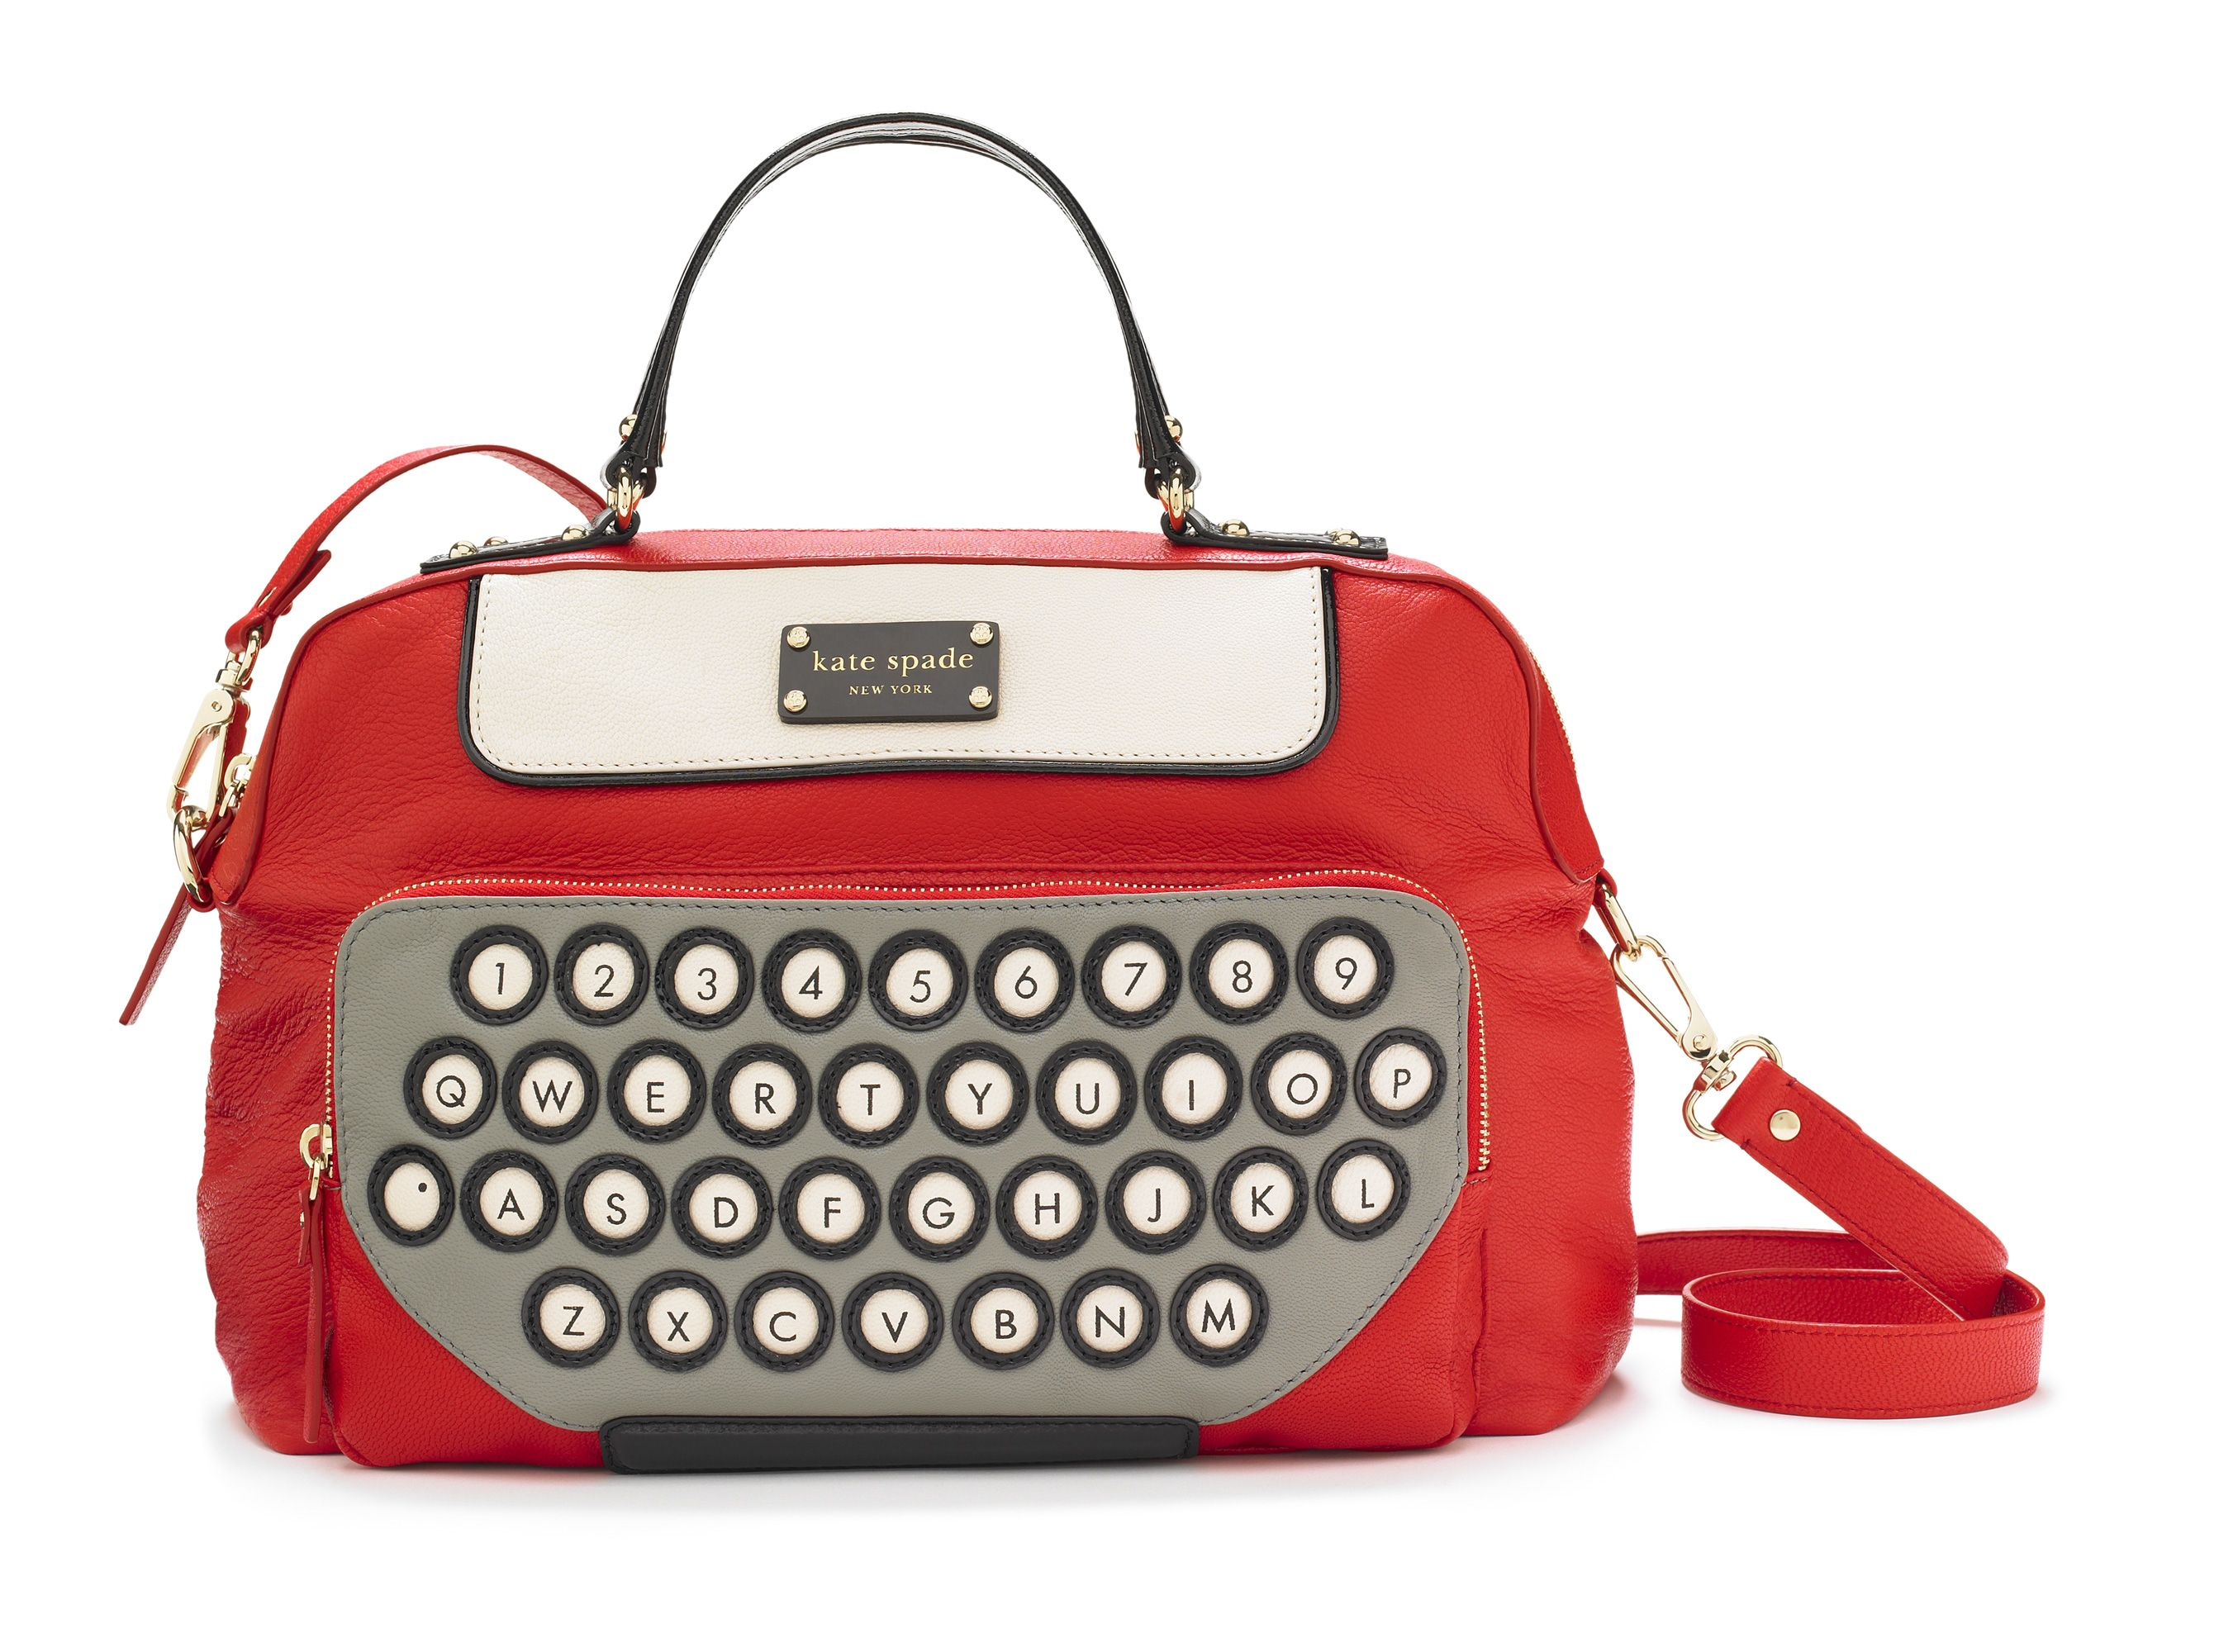 Image result for kate spade typewriter bag